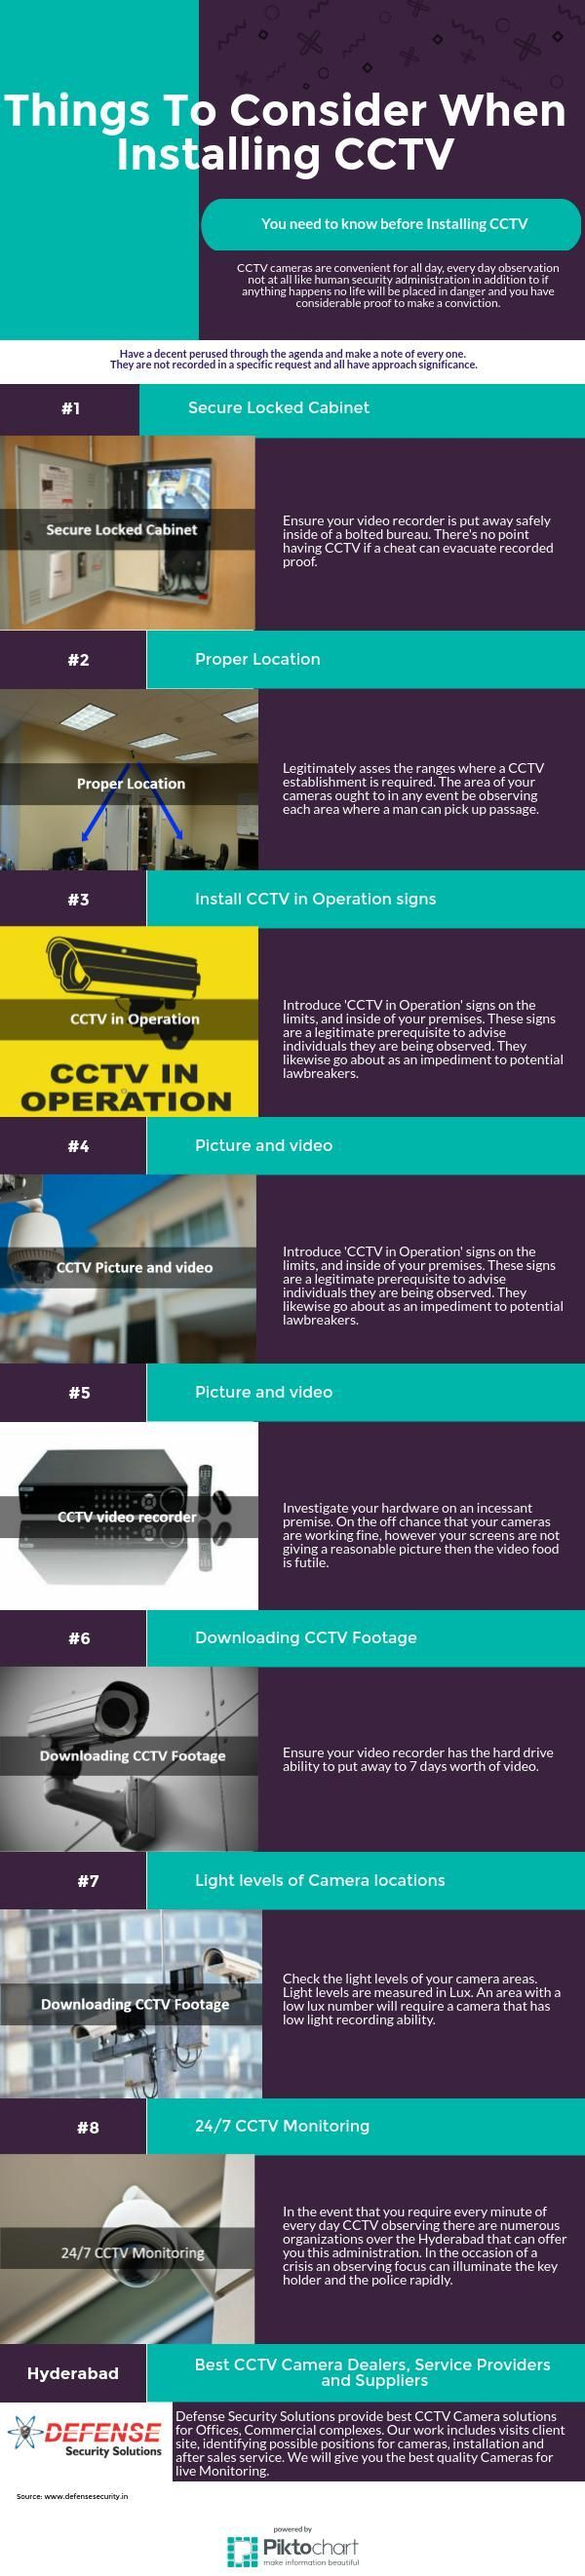 """Defense Security offered CCTV Camera Installation Service in Hyderabad. We provide CCTV Camera Installation Service with Affordability. <a href=""""http://www.defensesecurity.in"""" rel=""""nofollow"""" target=""""_blank"""">www.defensesecuri...</a>"""